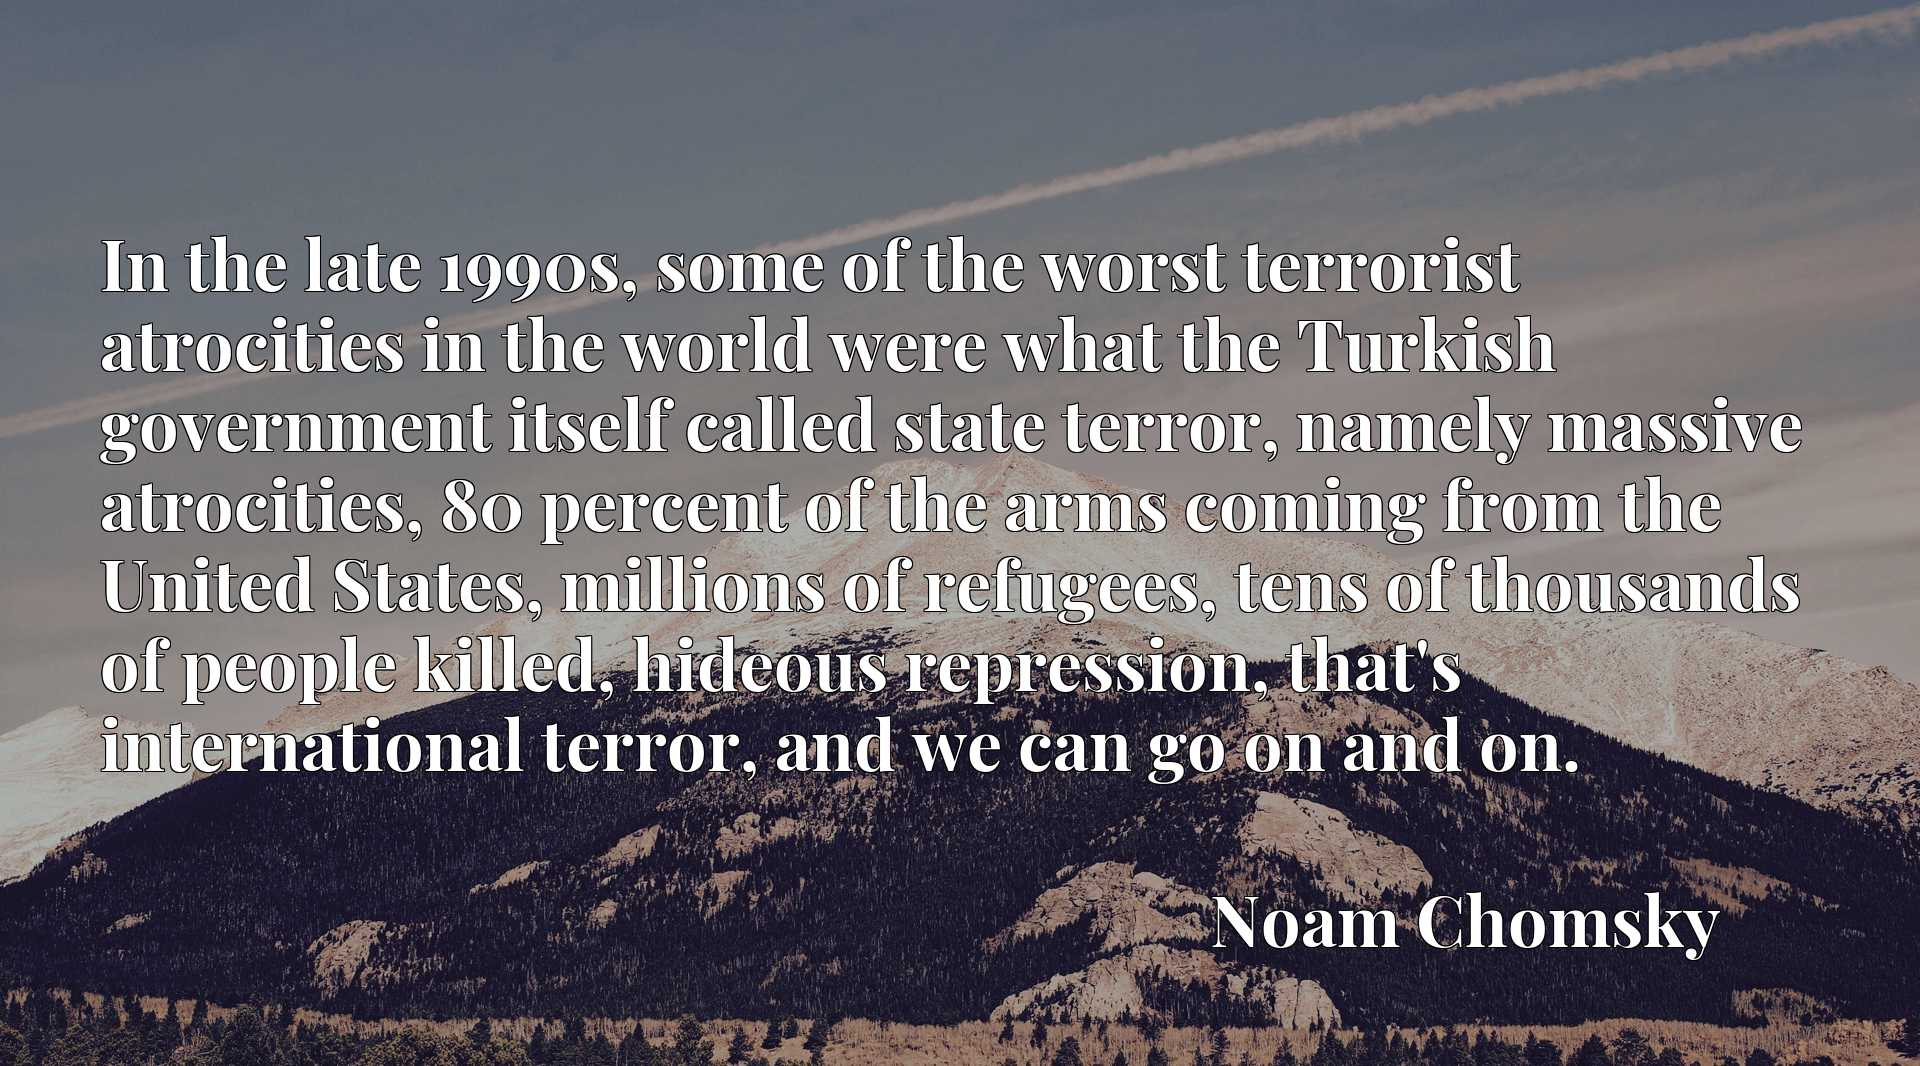 In the late 1990s, some of the worst terrorist atrocities in the world were what the Turkish government itself called state terror, namely massive atrocities, 80 percent of the arms coming from the United States, millions of refugees, tens of thousands of people killed, hideous repression, that's international terror, and we can go on and on.